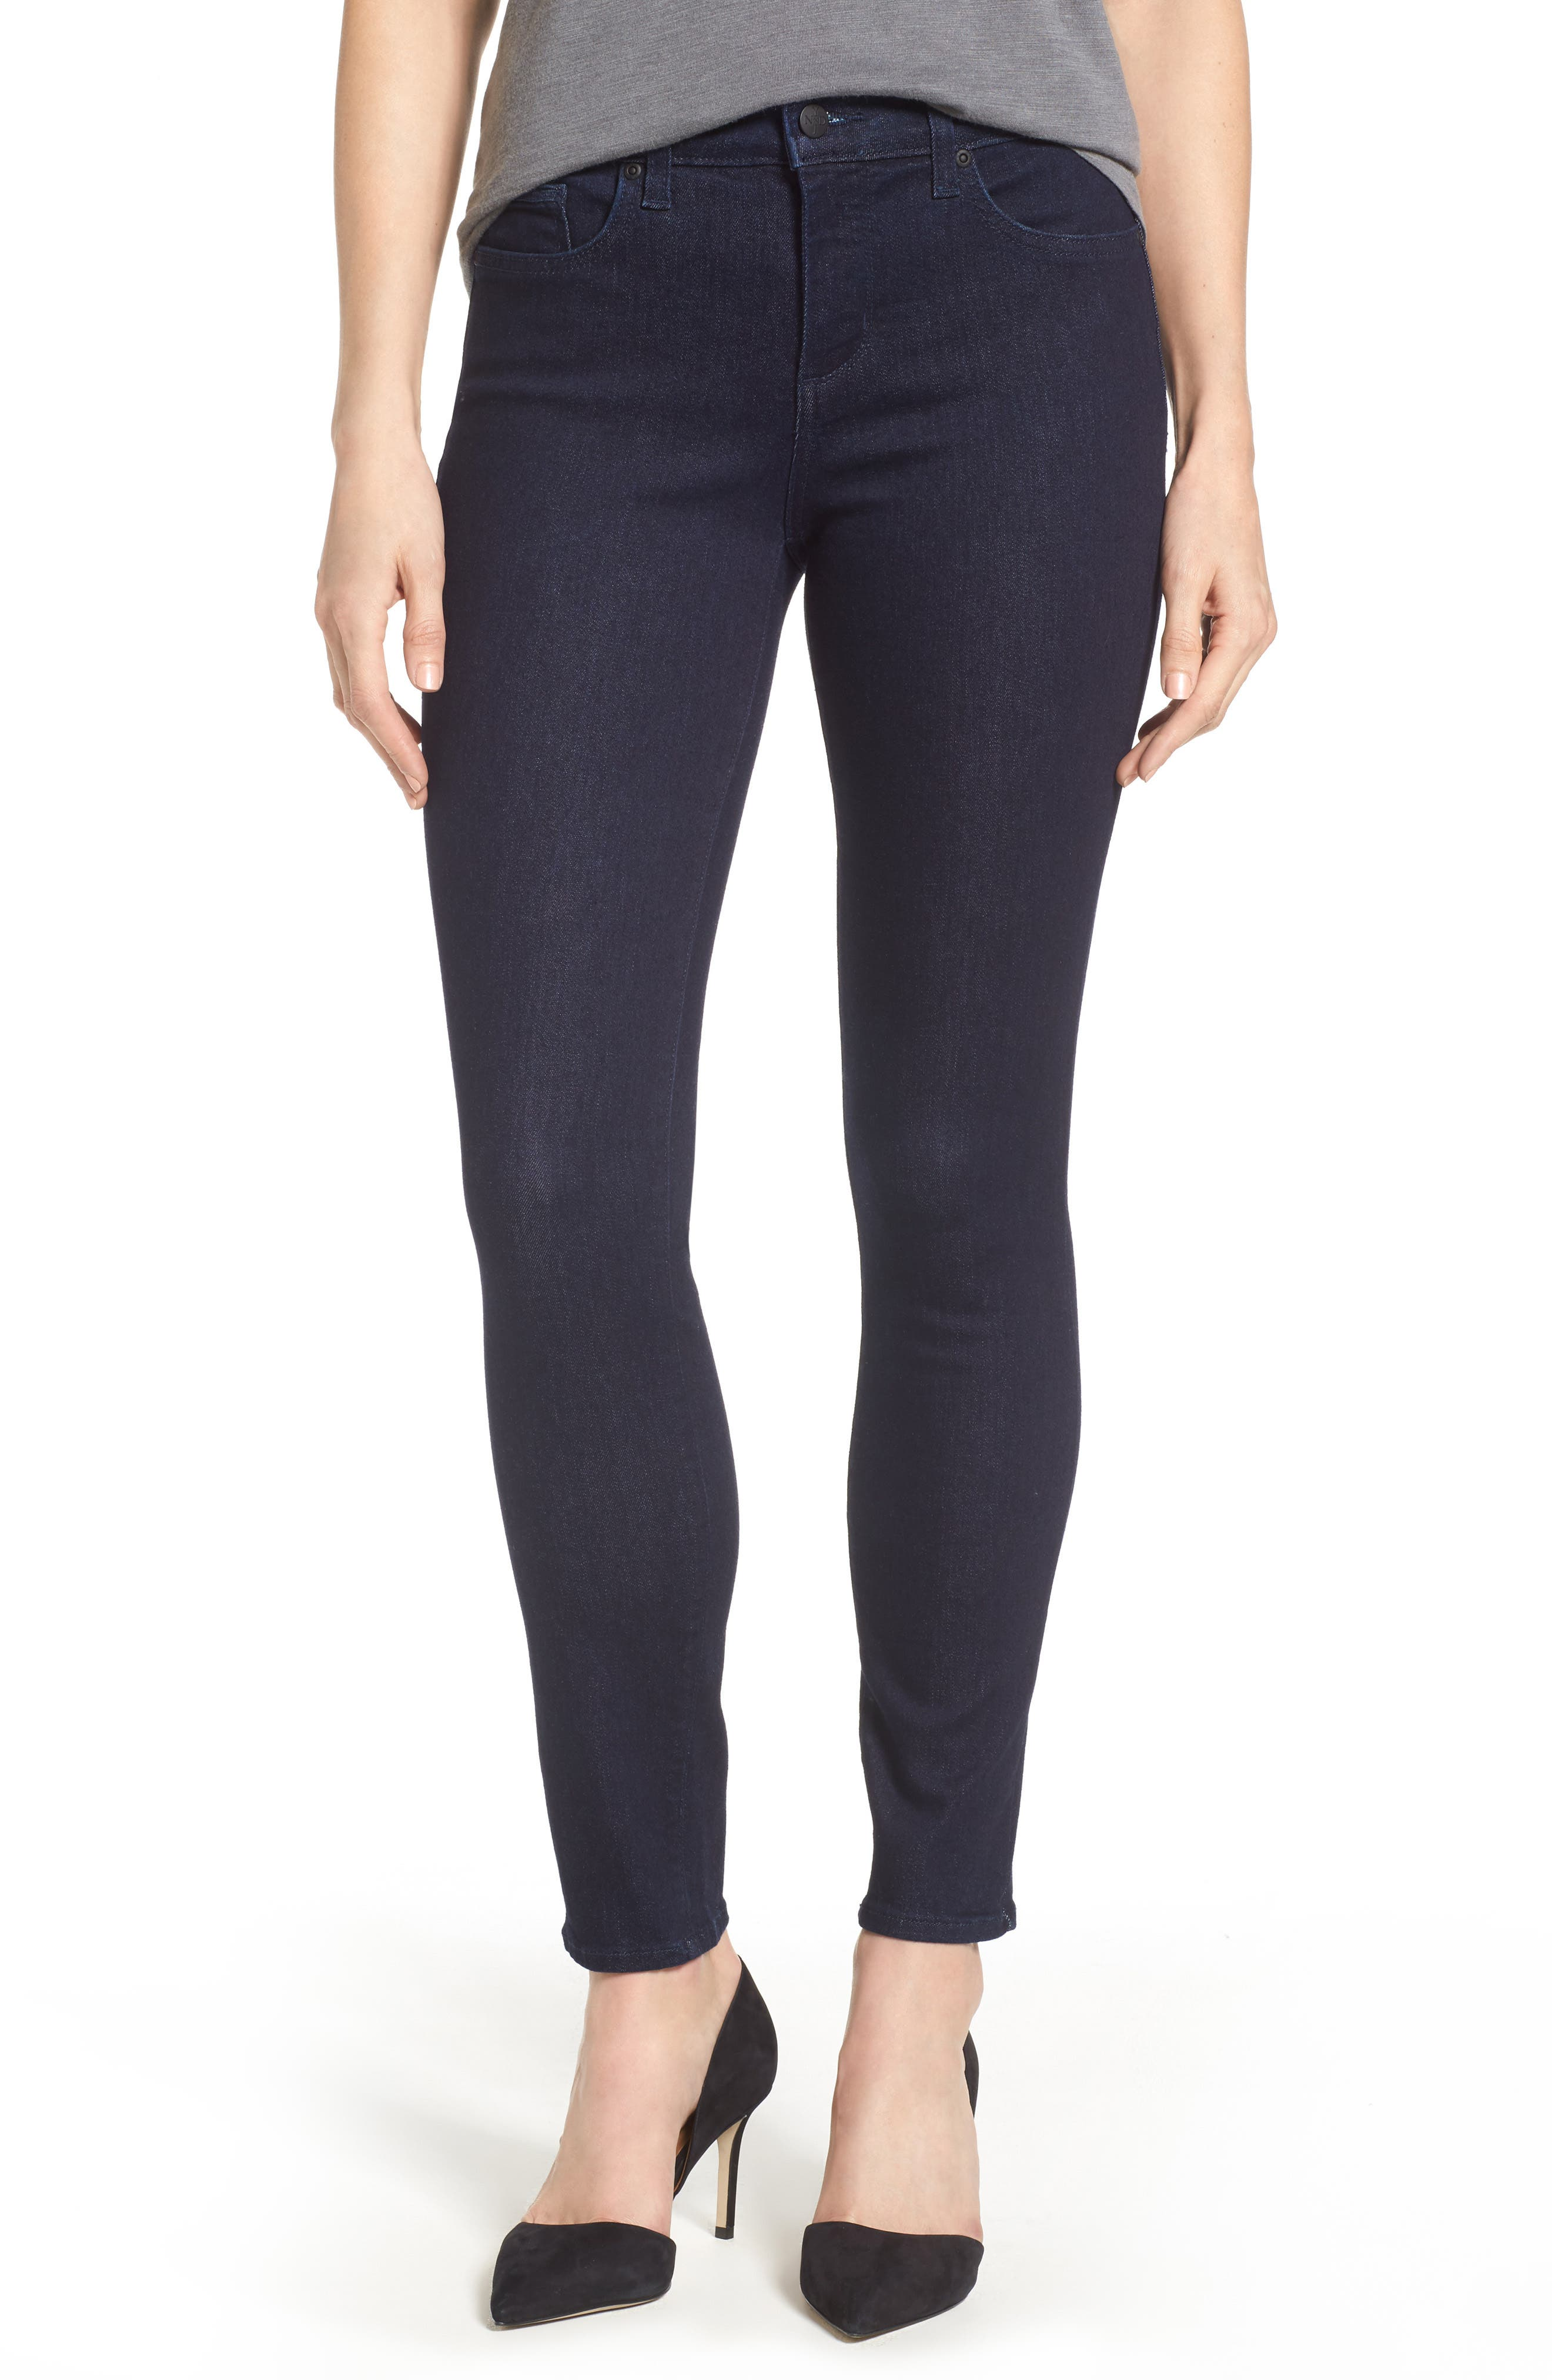 Alternate Image 1 Selected - NYDJ Ami Stretch Skinny Jeans (Rinse) (Regular & Petite)